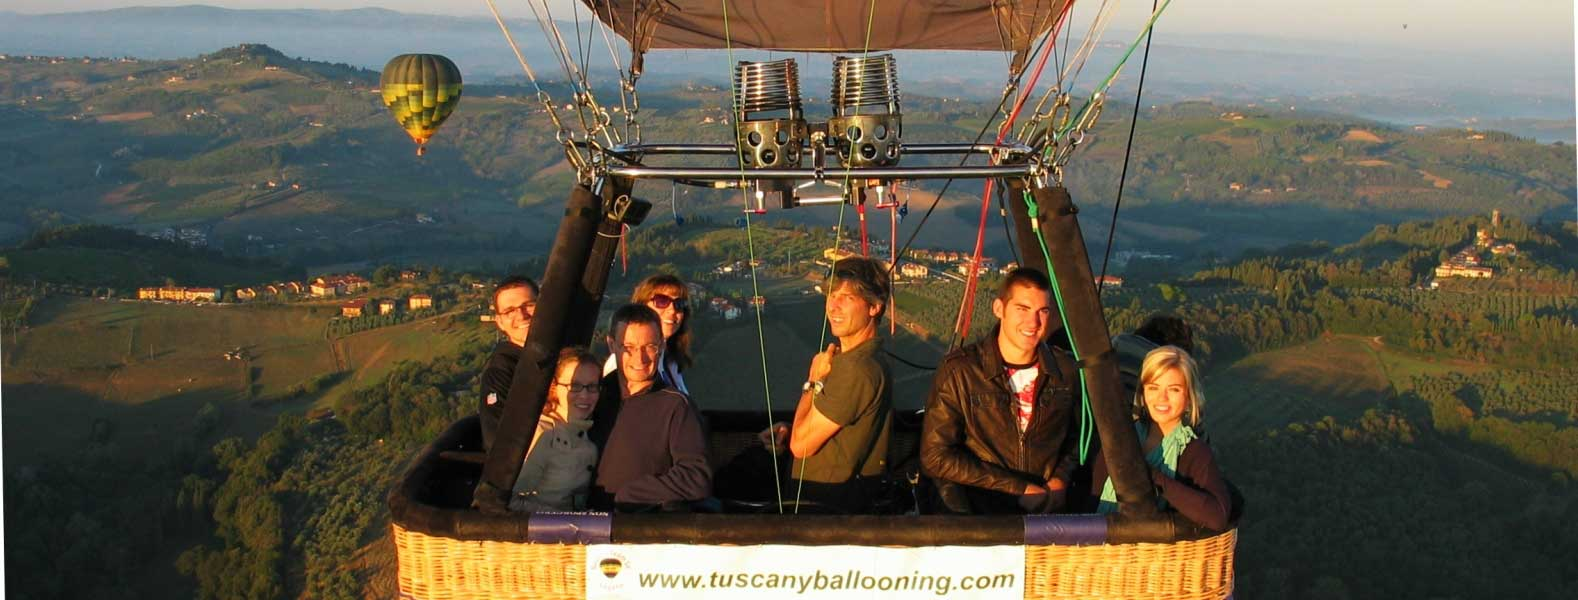 tuscany-ballooning-in-flight-over-chianti